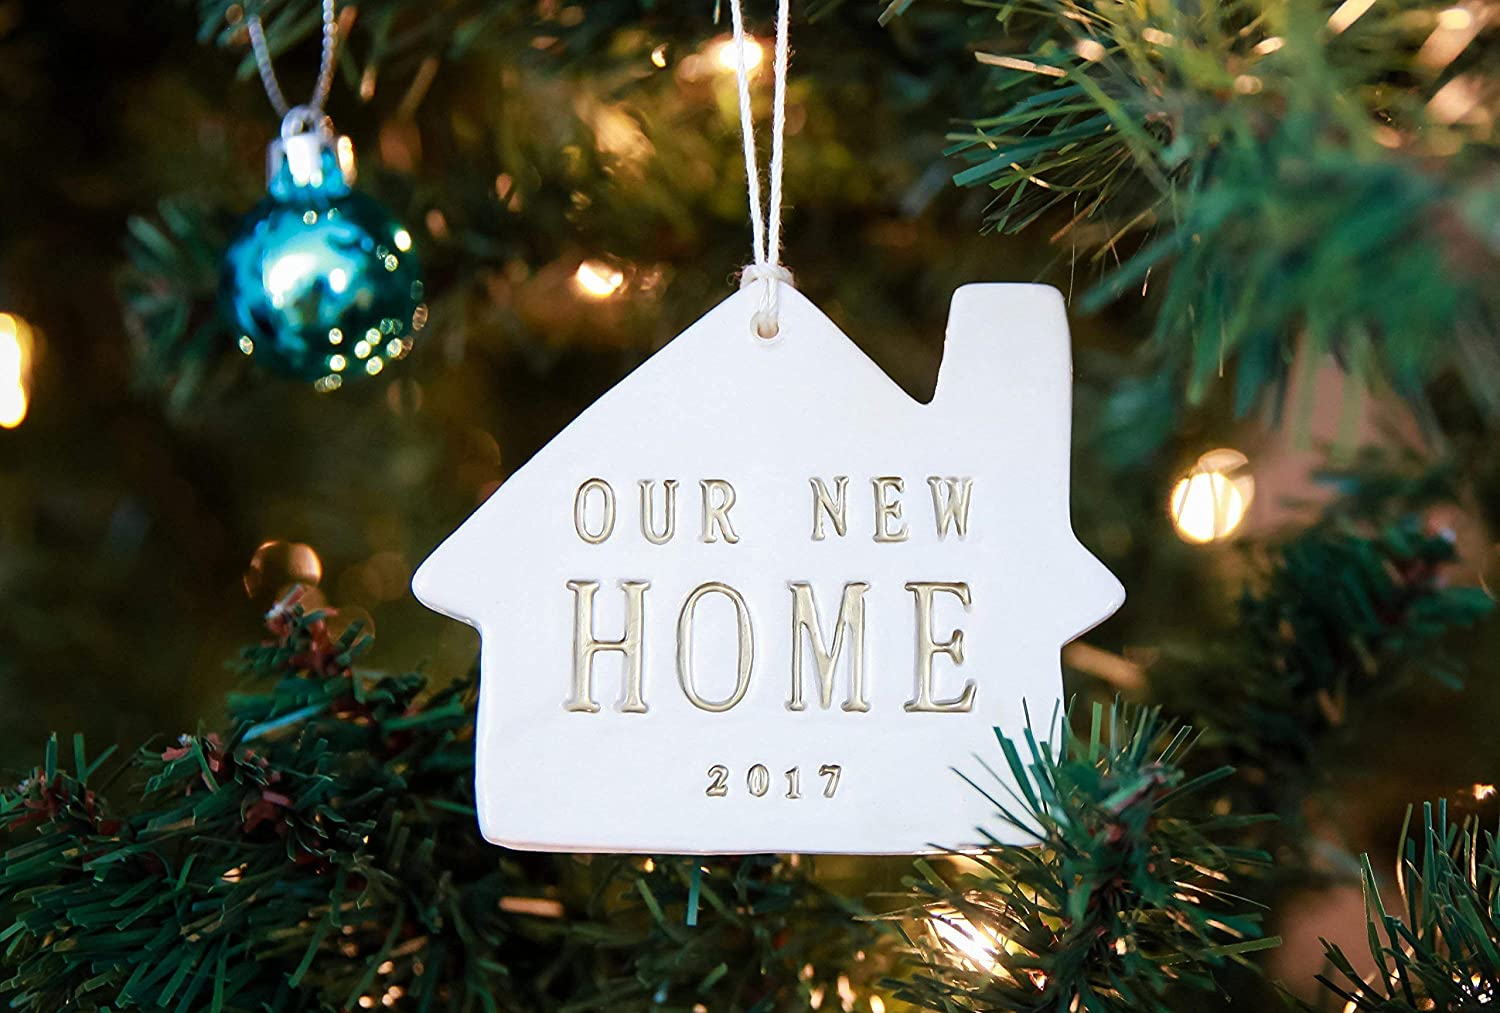 Gift Boxed and Ready to Give Our New Home 2019 Christmas Ornament